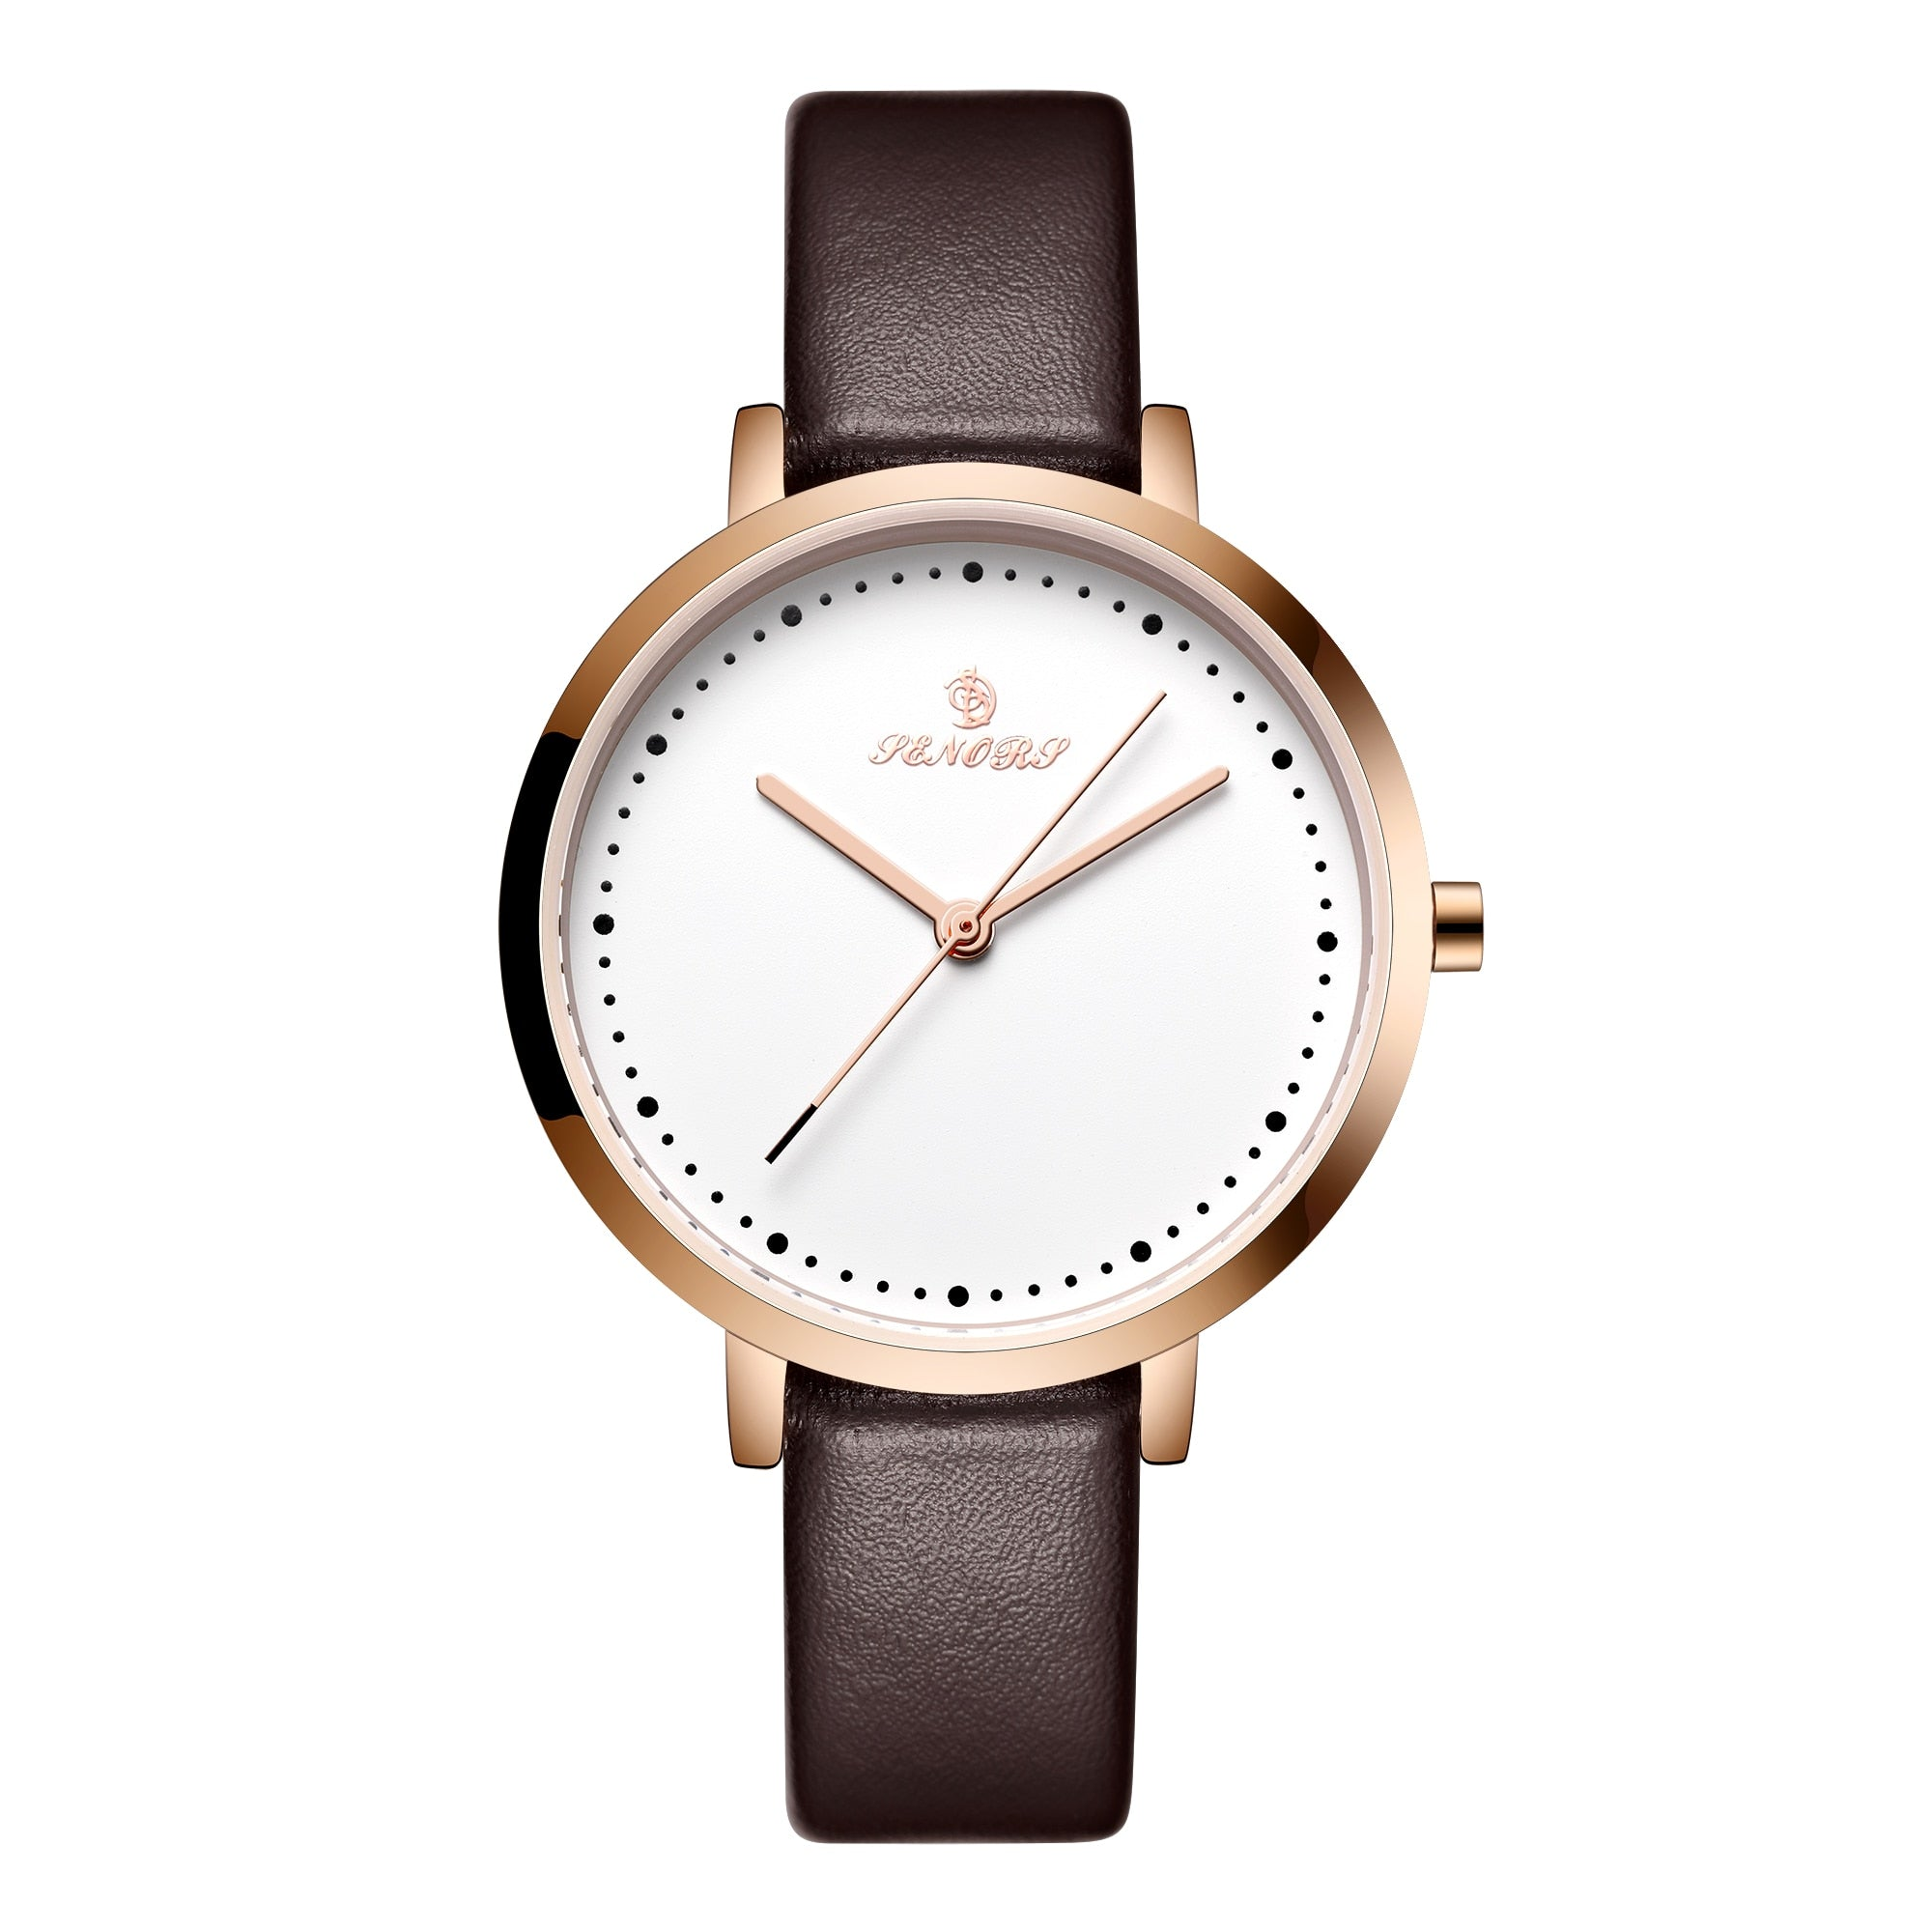 Senors Woman's Watch Fashion Simple Quartz Wristwatches Sport Leather Band Casual Lady Watches Women Reloj Mujer Dress Gift